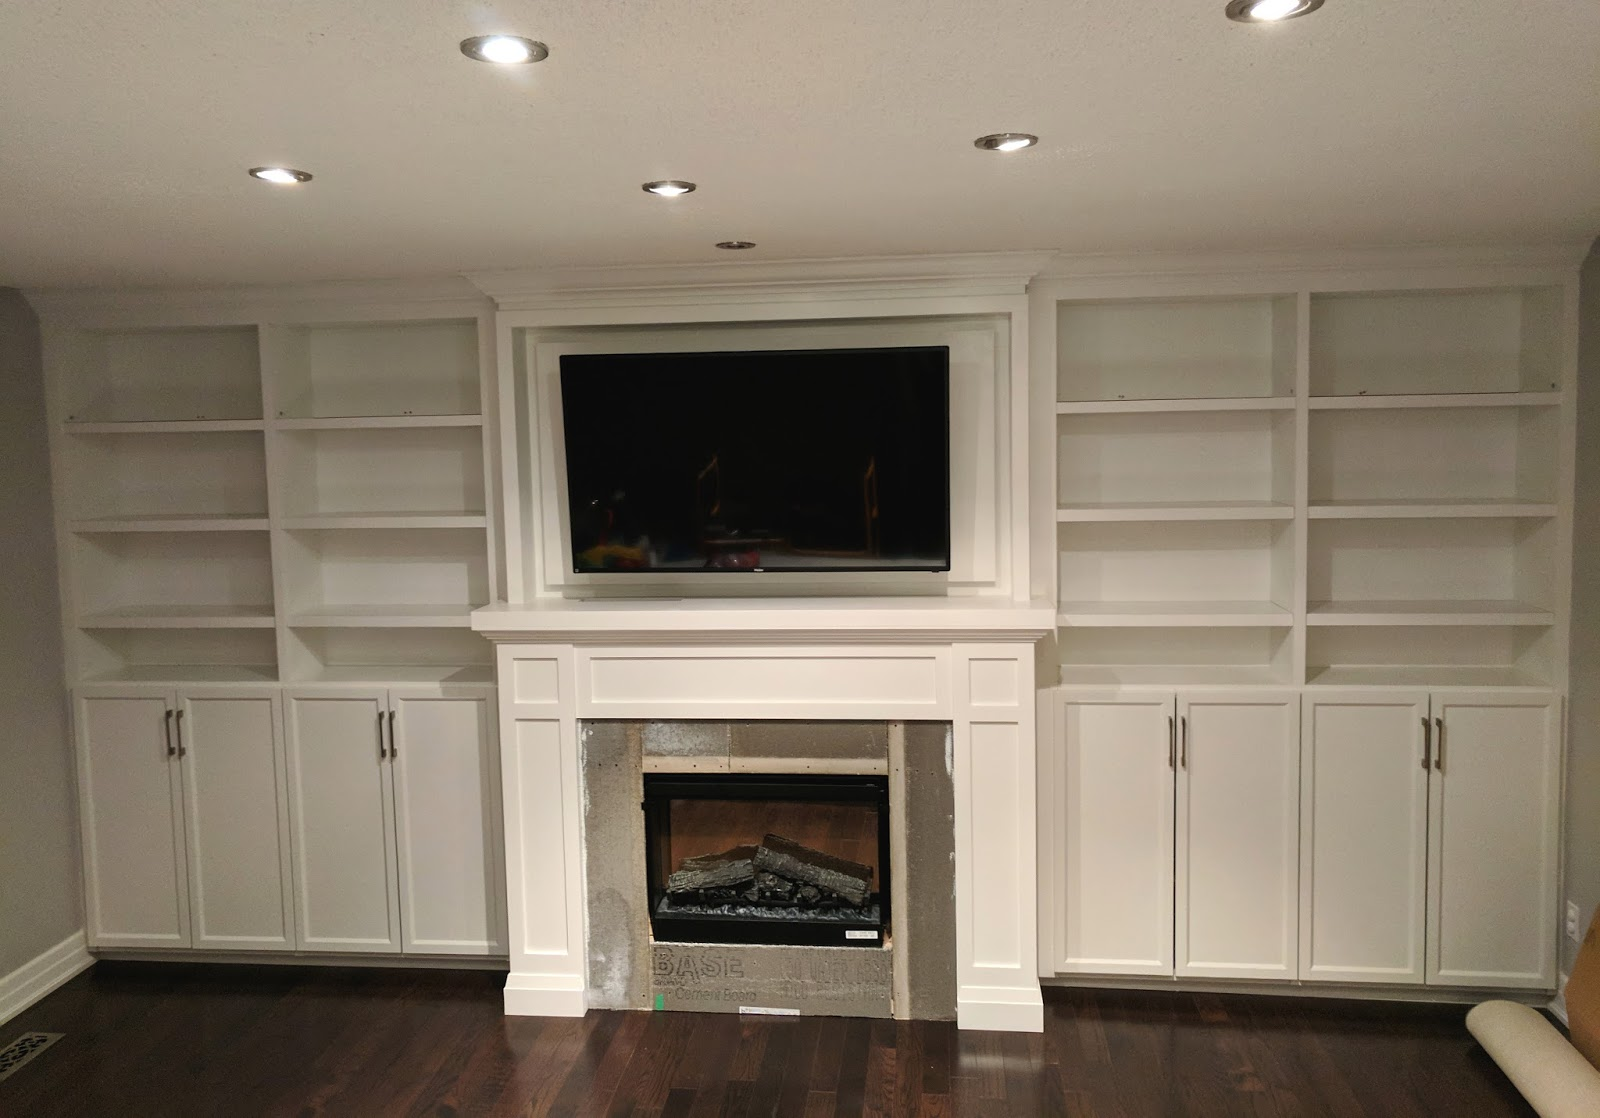 bookcases hack off a show door with doors bookcase can cabinet bookshelf you billy ikea glass